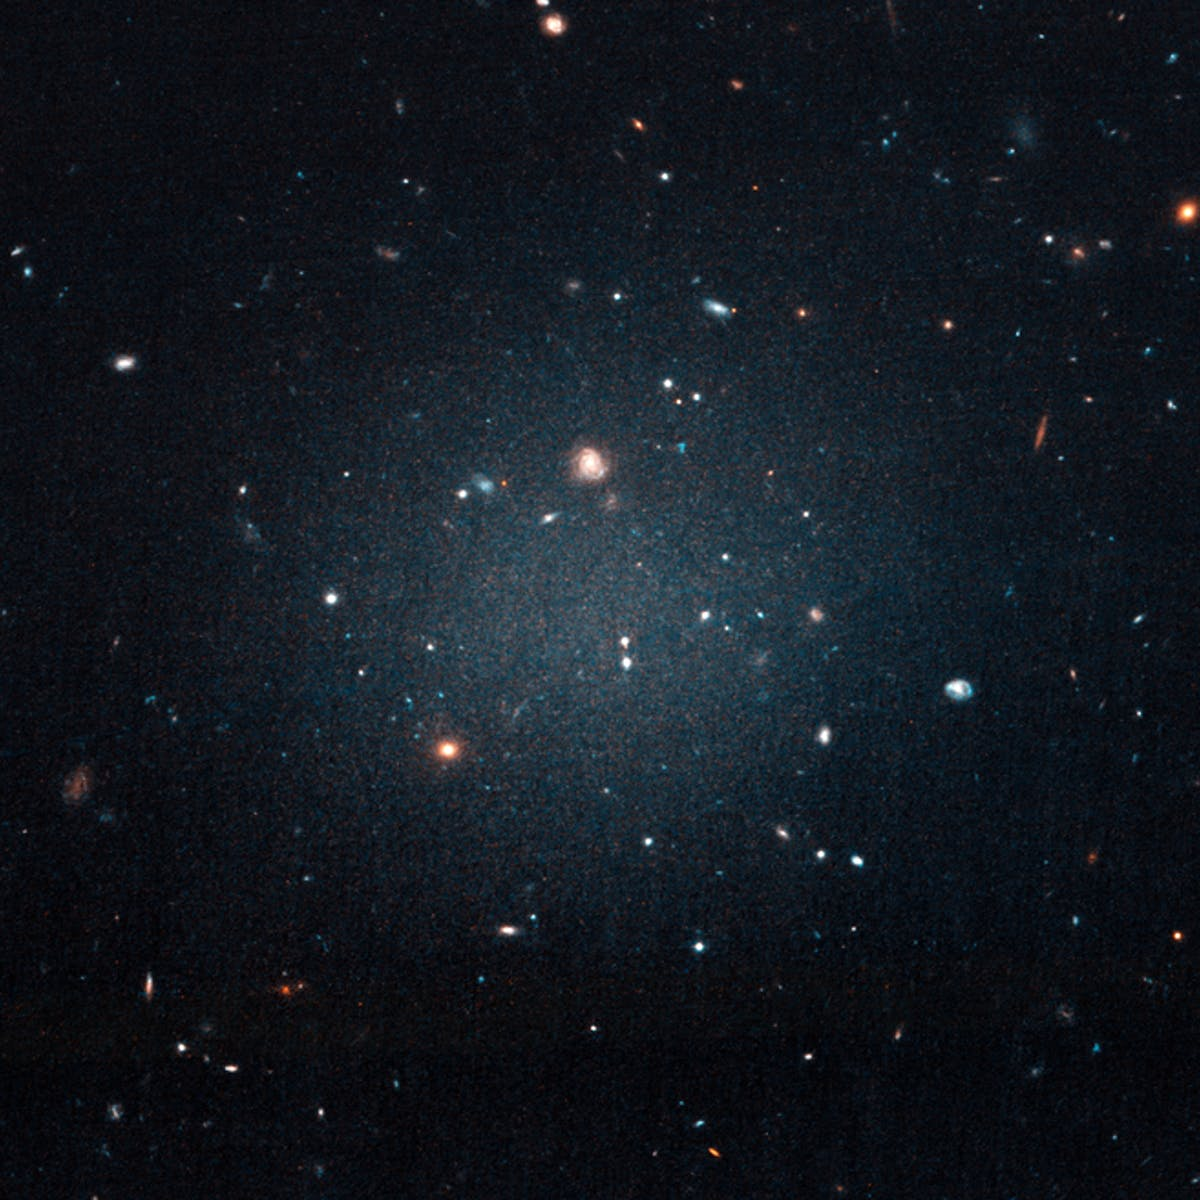 Astrophysicists Discover 'Impossible' Galaxy With Almost No Dark Matter